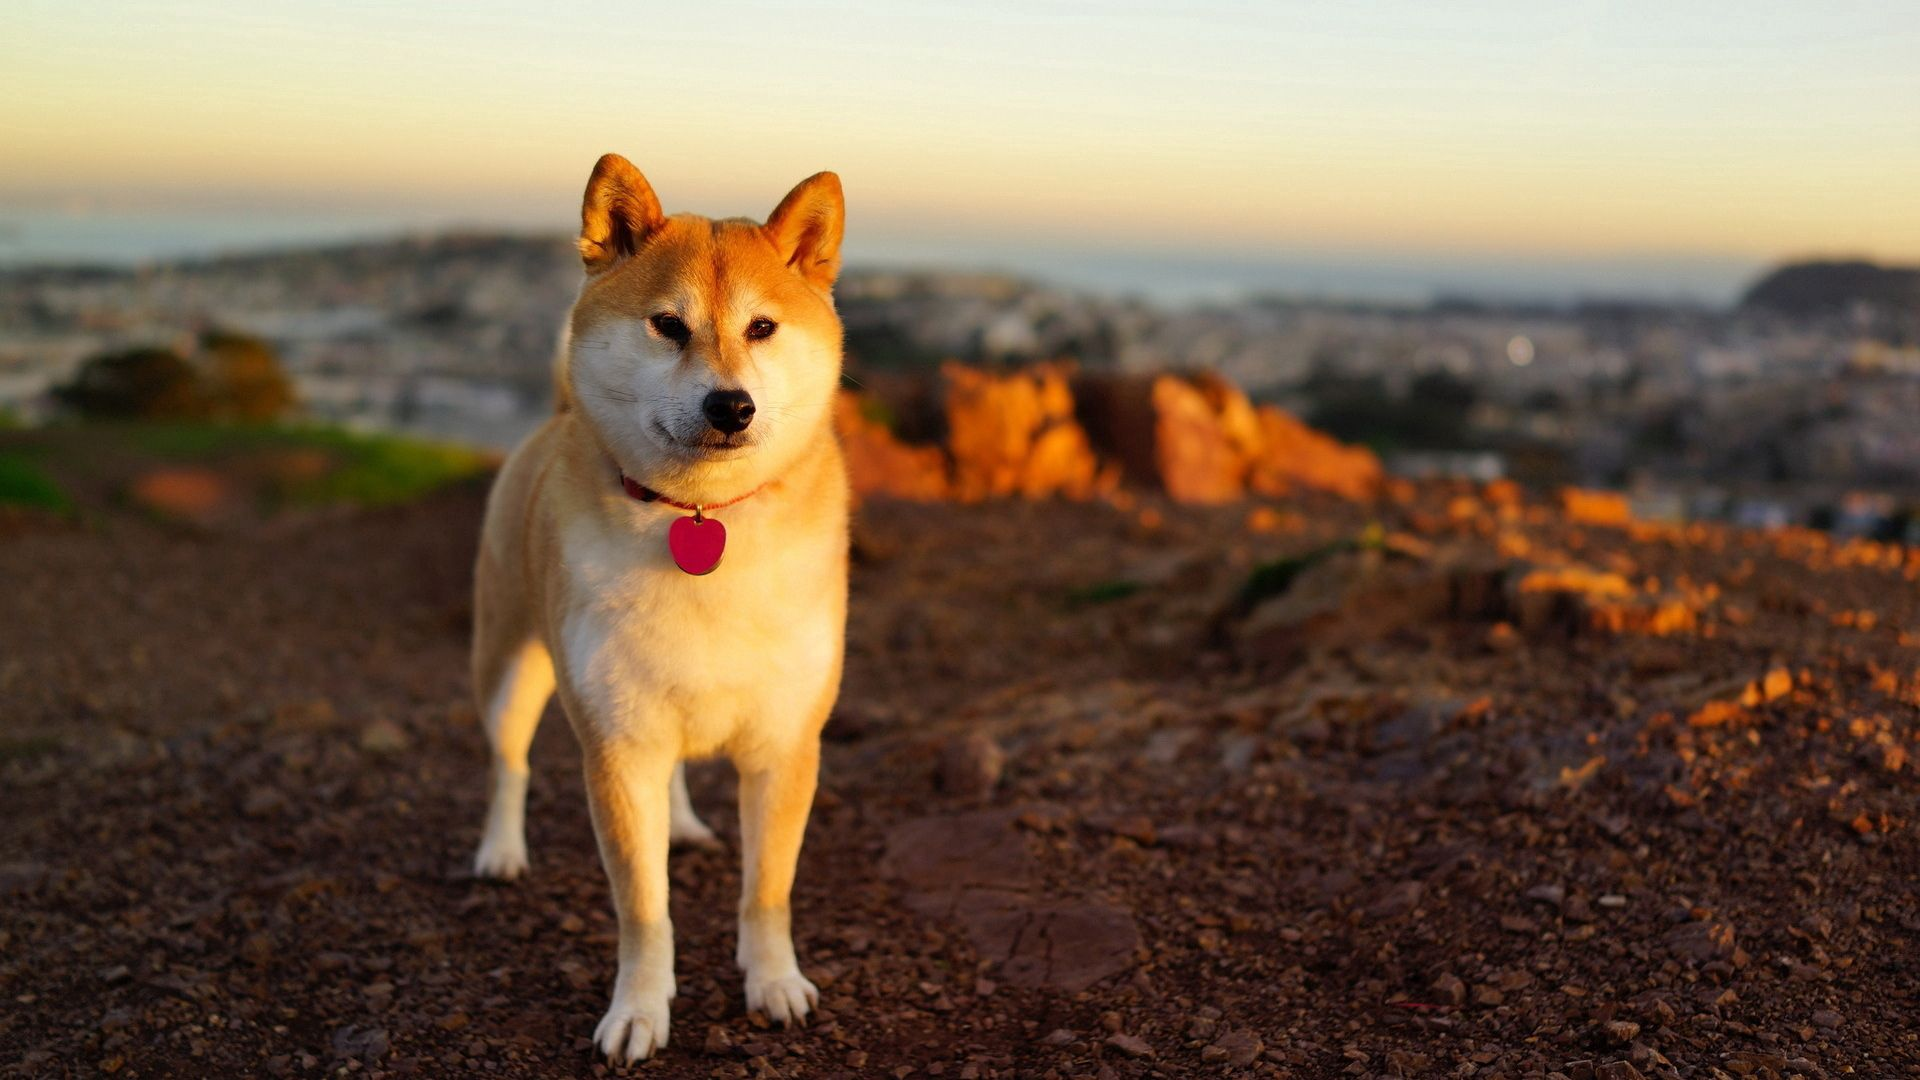 97541 Screensavers and Wallpapers Stroll for phone. Download Animals, Grass, Dog, Stroll, Akita Inu pictures for free